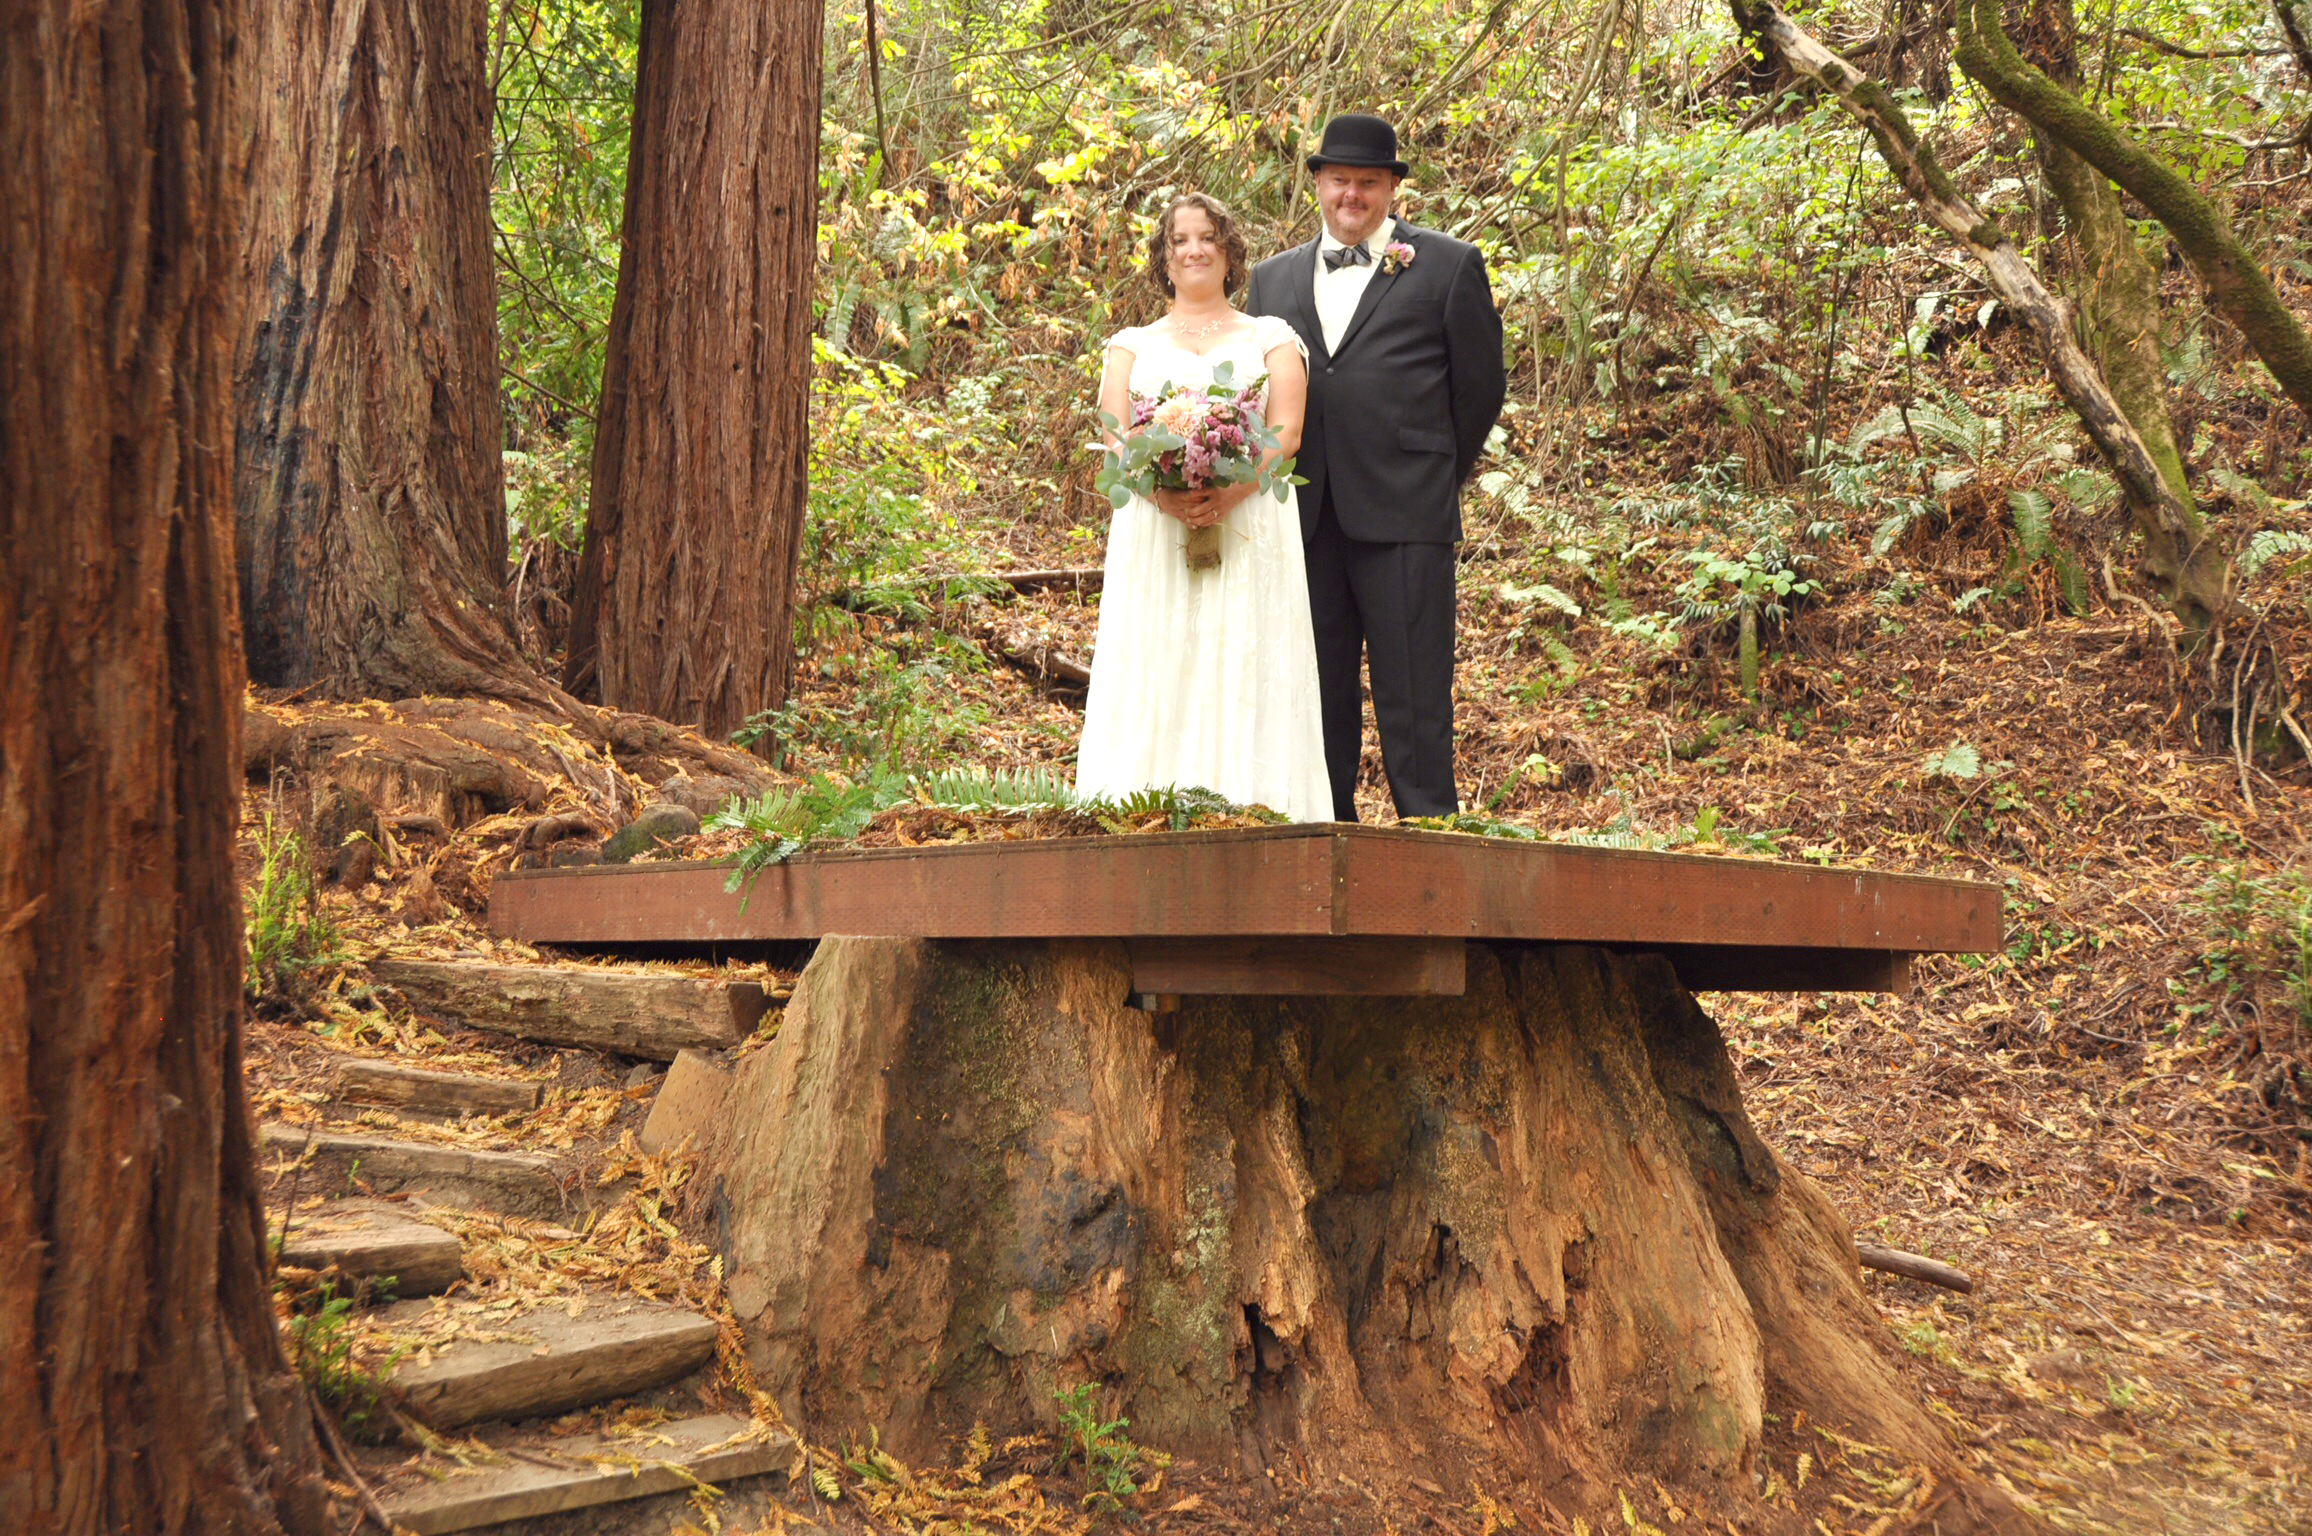 Our California wedding in the Redwood forest